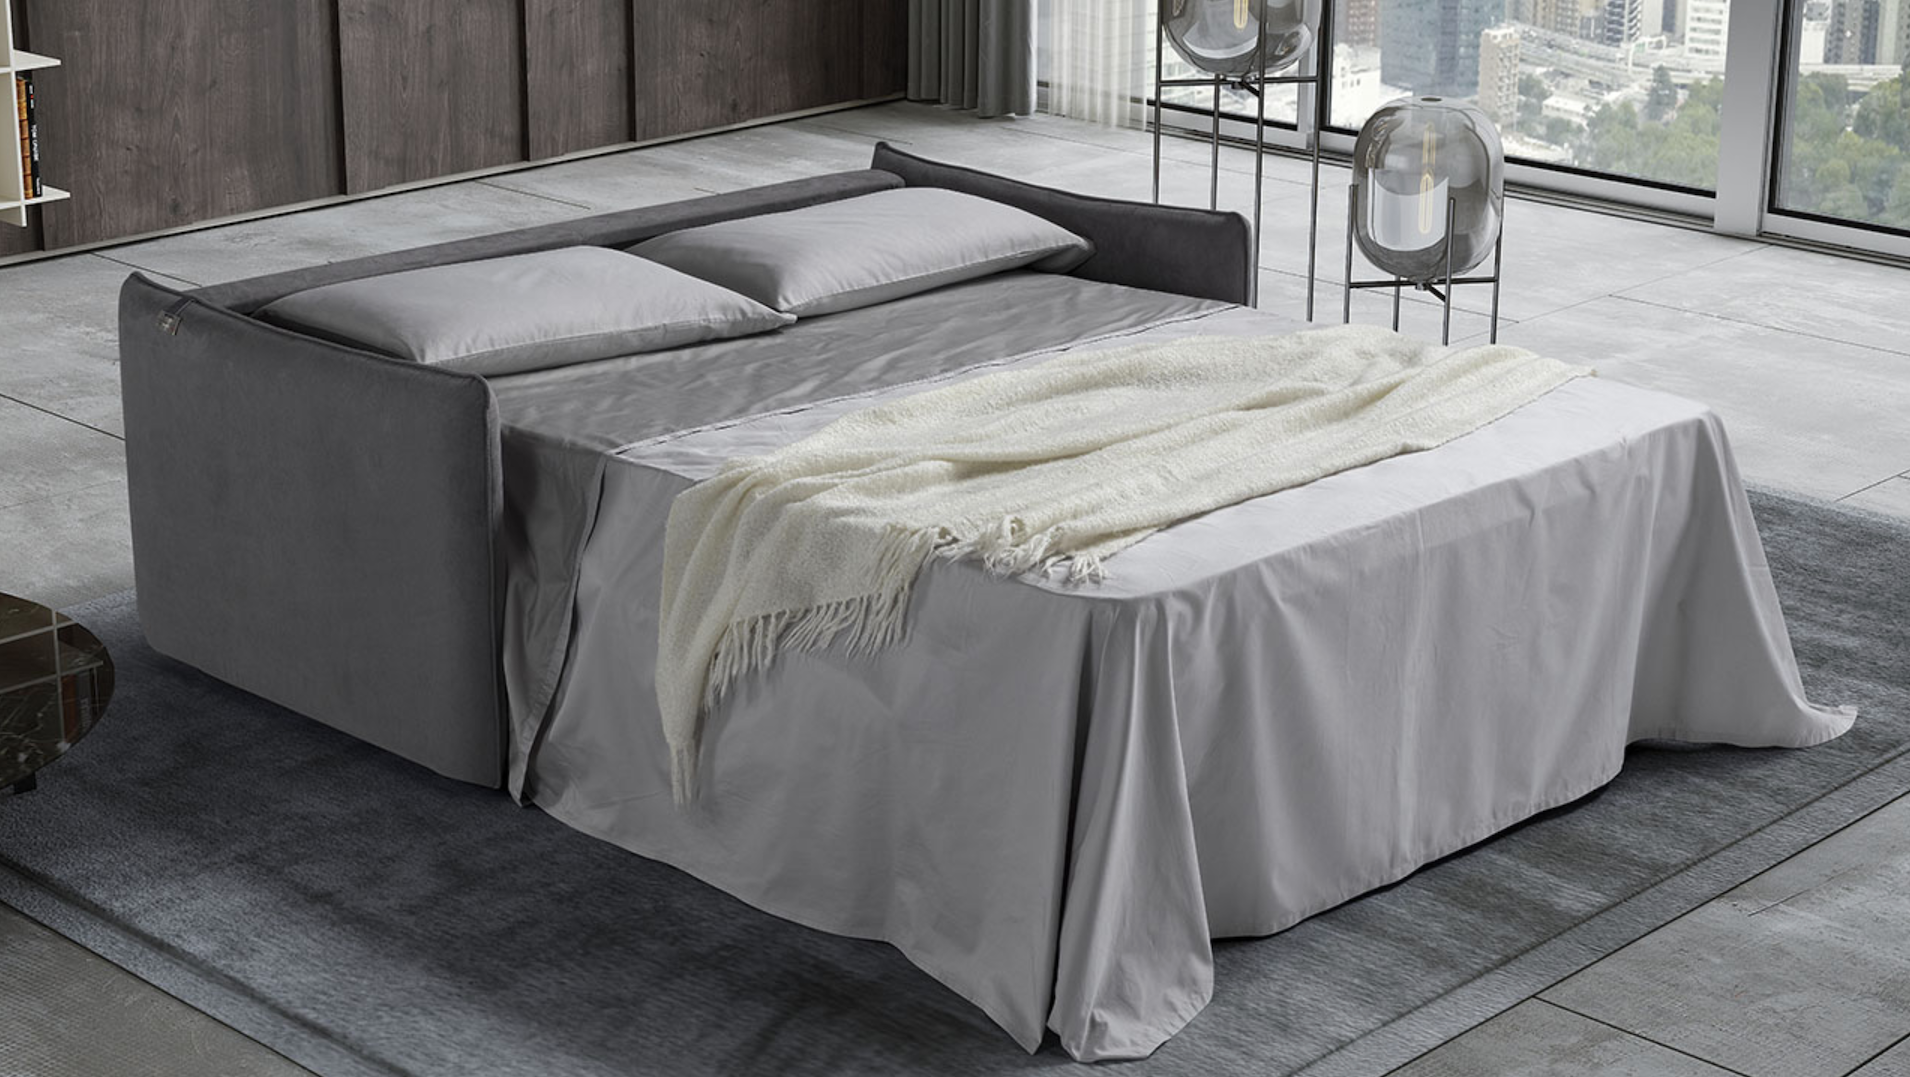 AIMEE Italian Crafted 3 Seat Sofa Bed in PLAZA SILVER RRP £1979 - Image 3 of 5